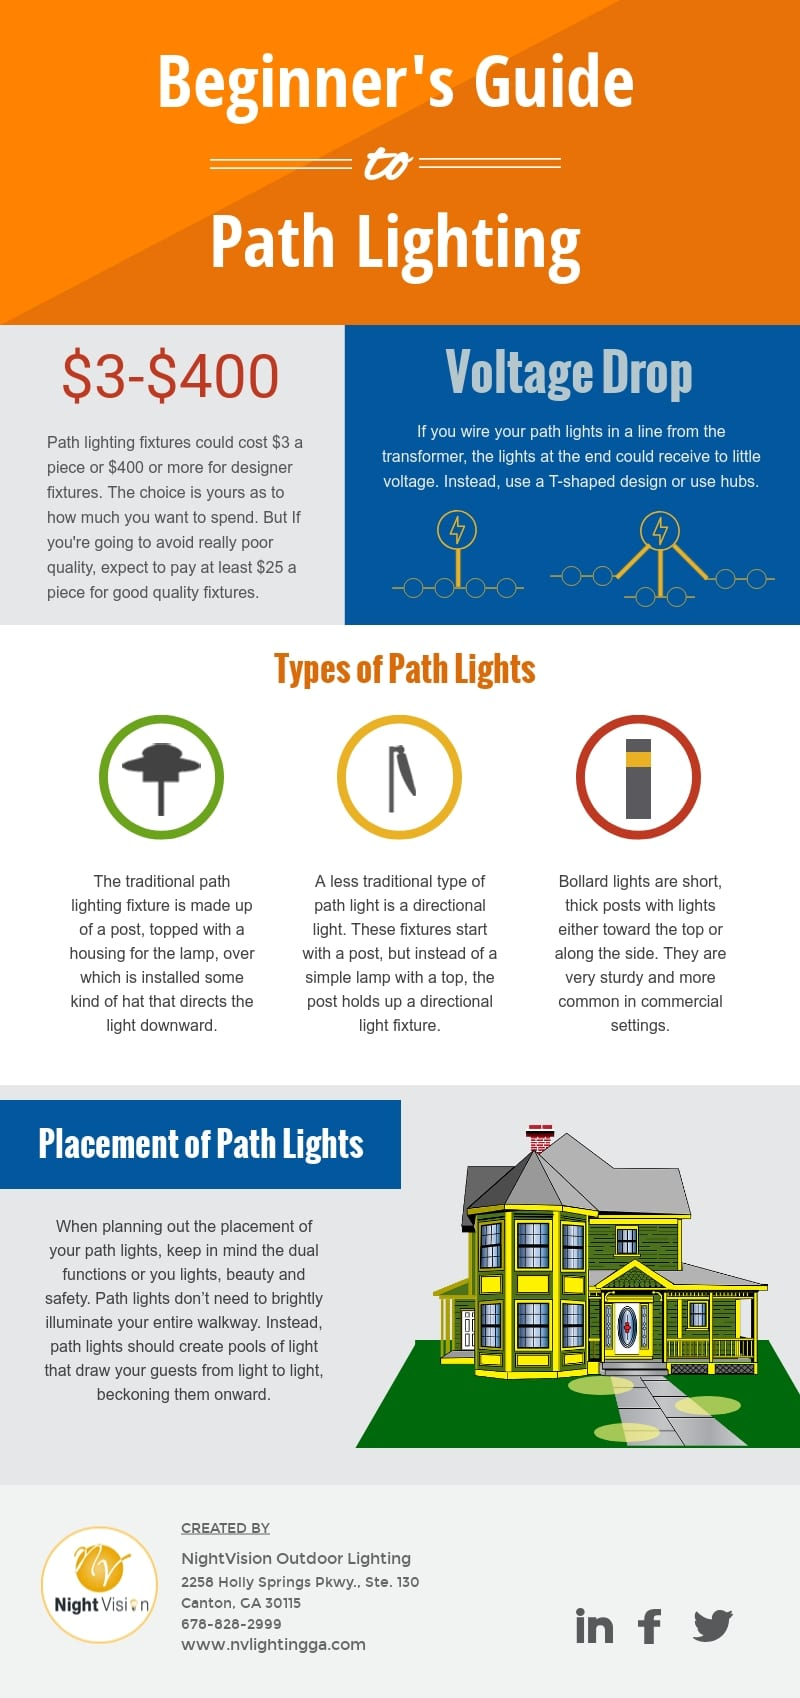 Beginner's Guide to Path Lighting [infographic]